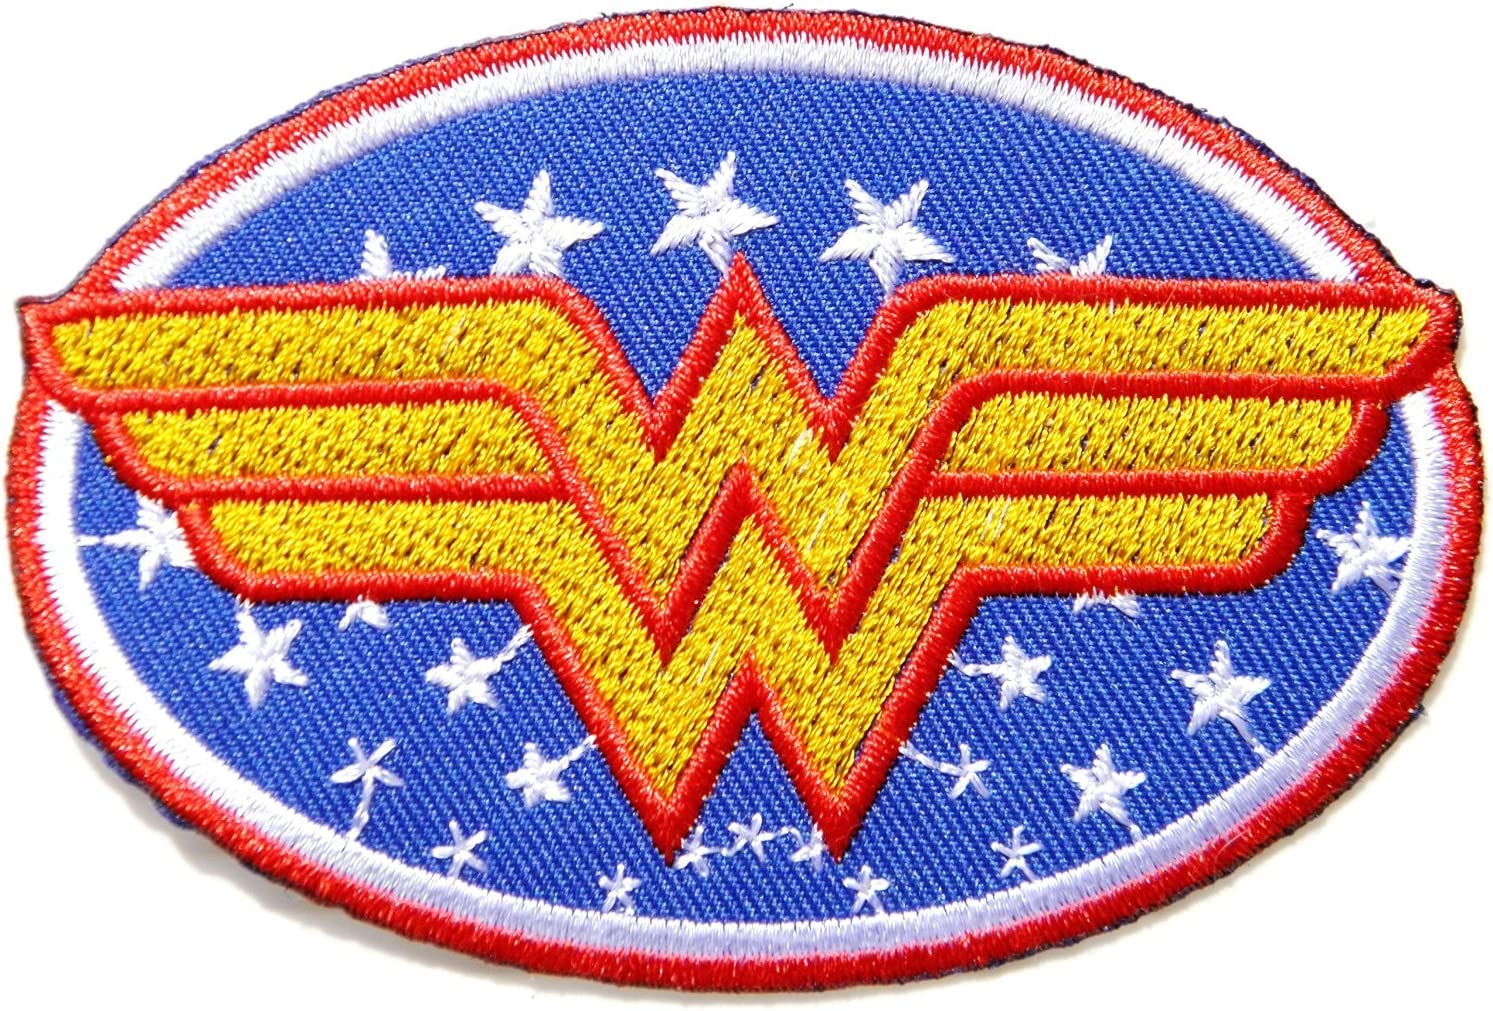 Wonder Woman Embroidered Iron On Sew on Patch Super hero embroidery badge